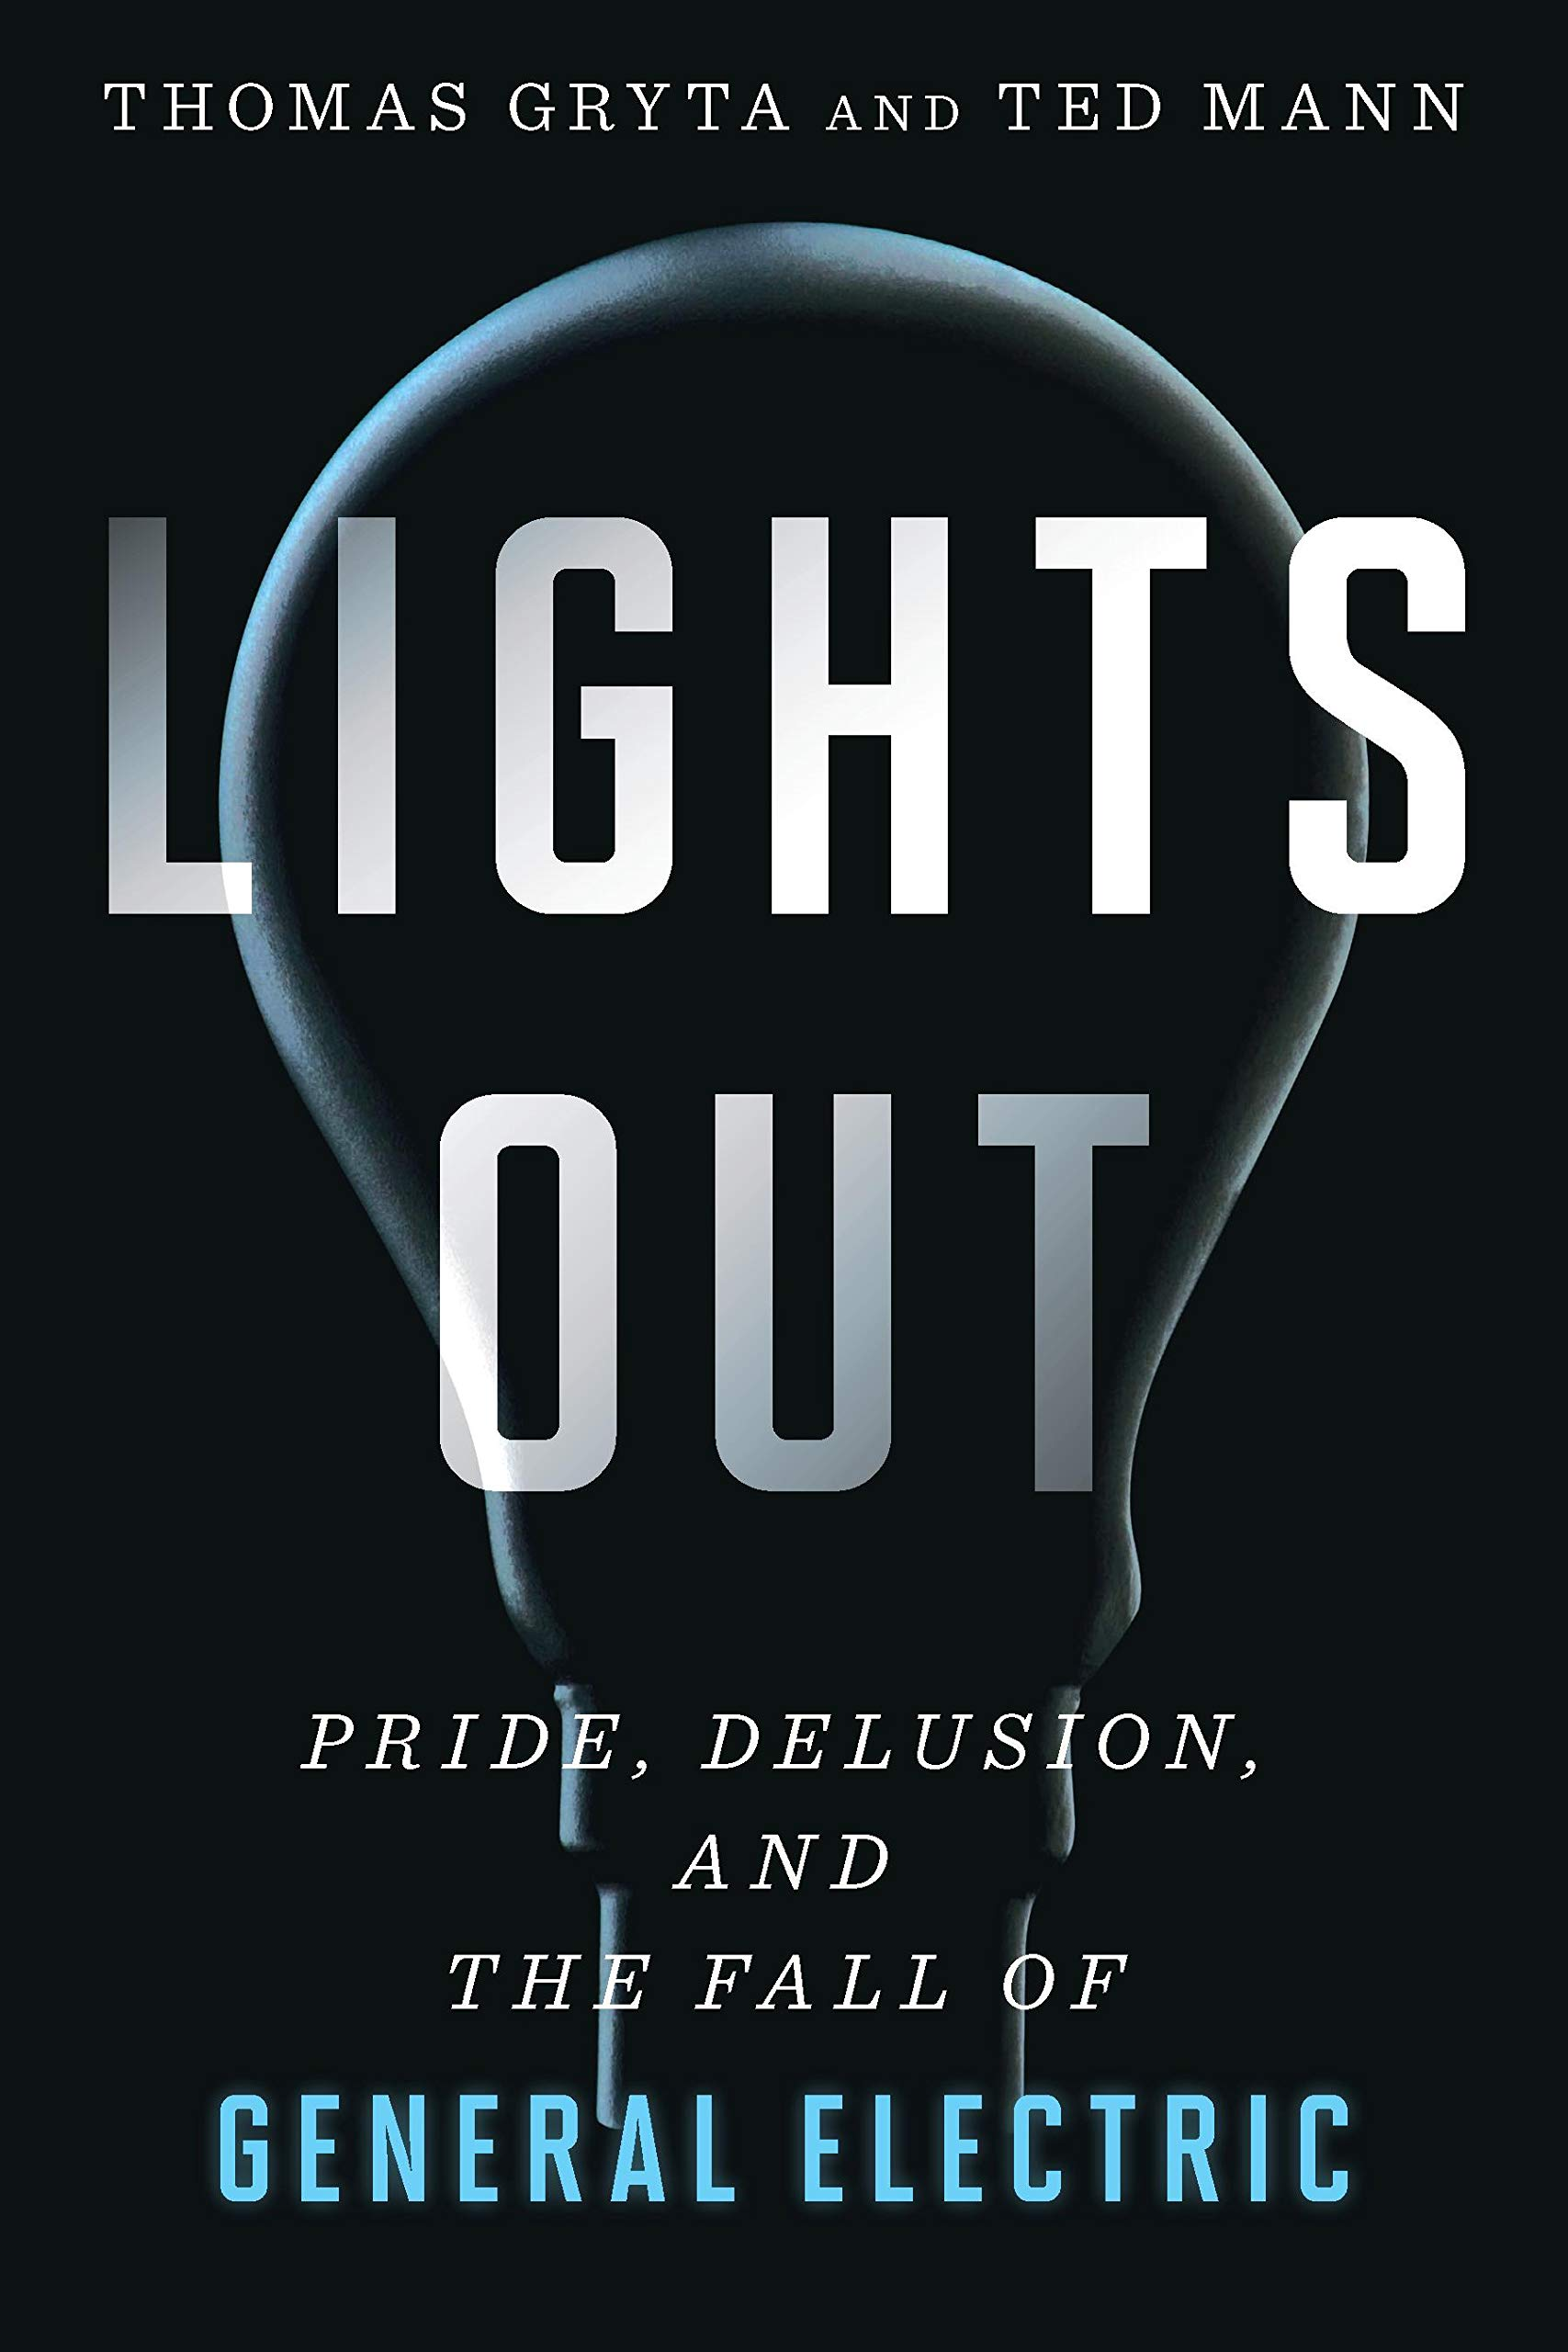 Image OfLights Out: Pride, Delusion, And The Fall Of General Electric (English Edition)